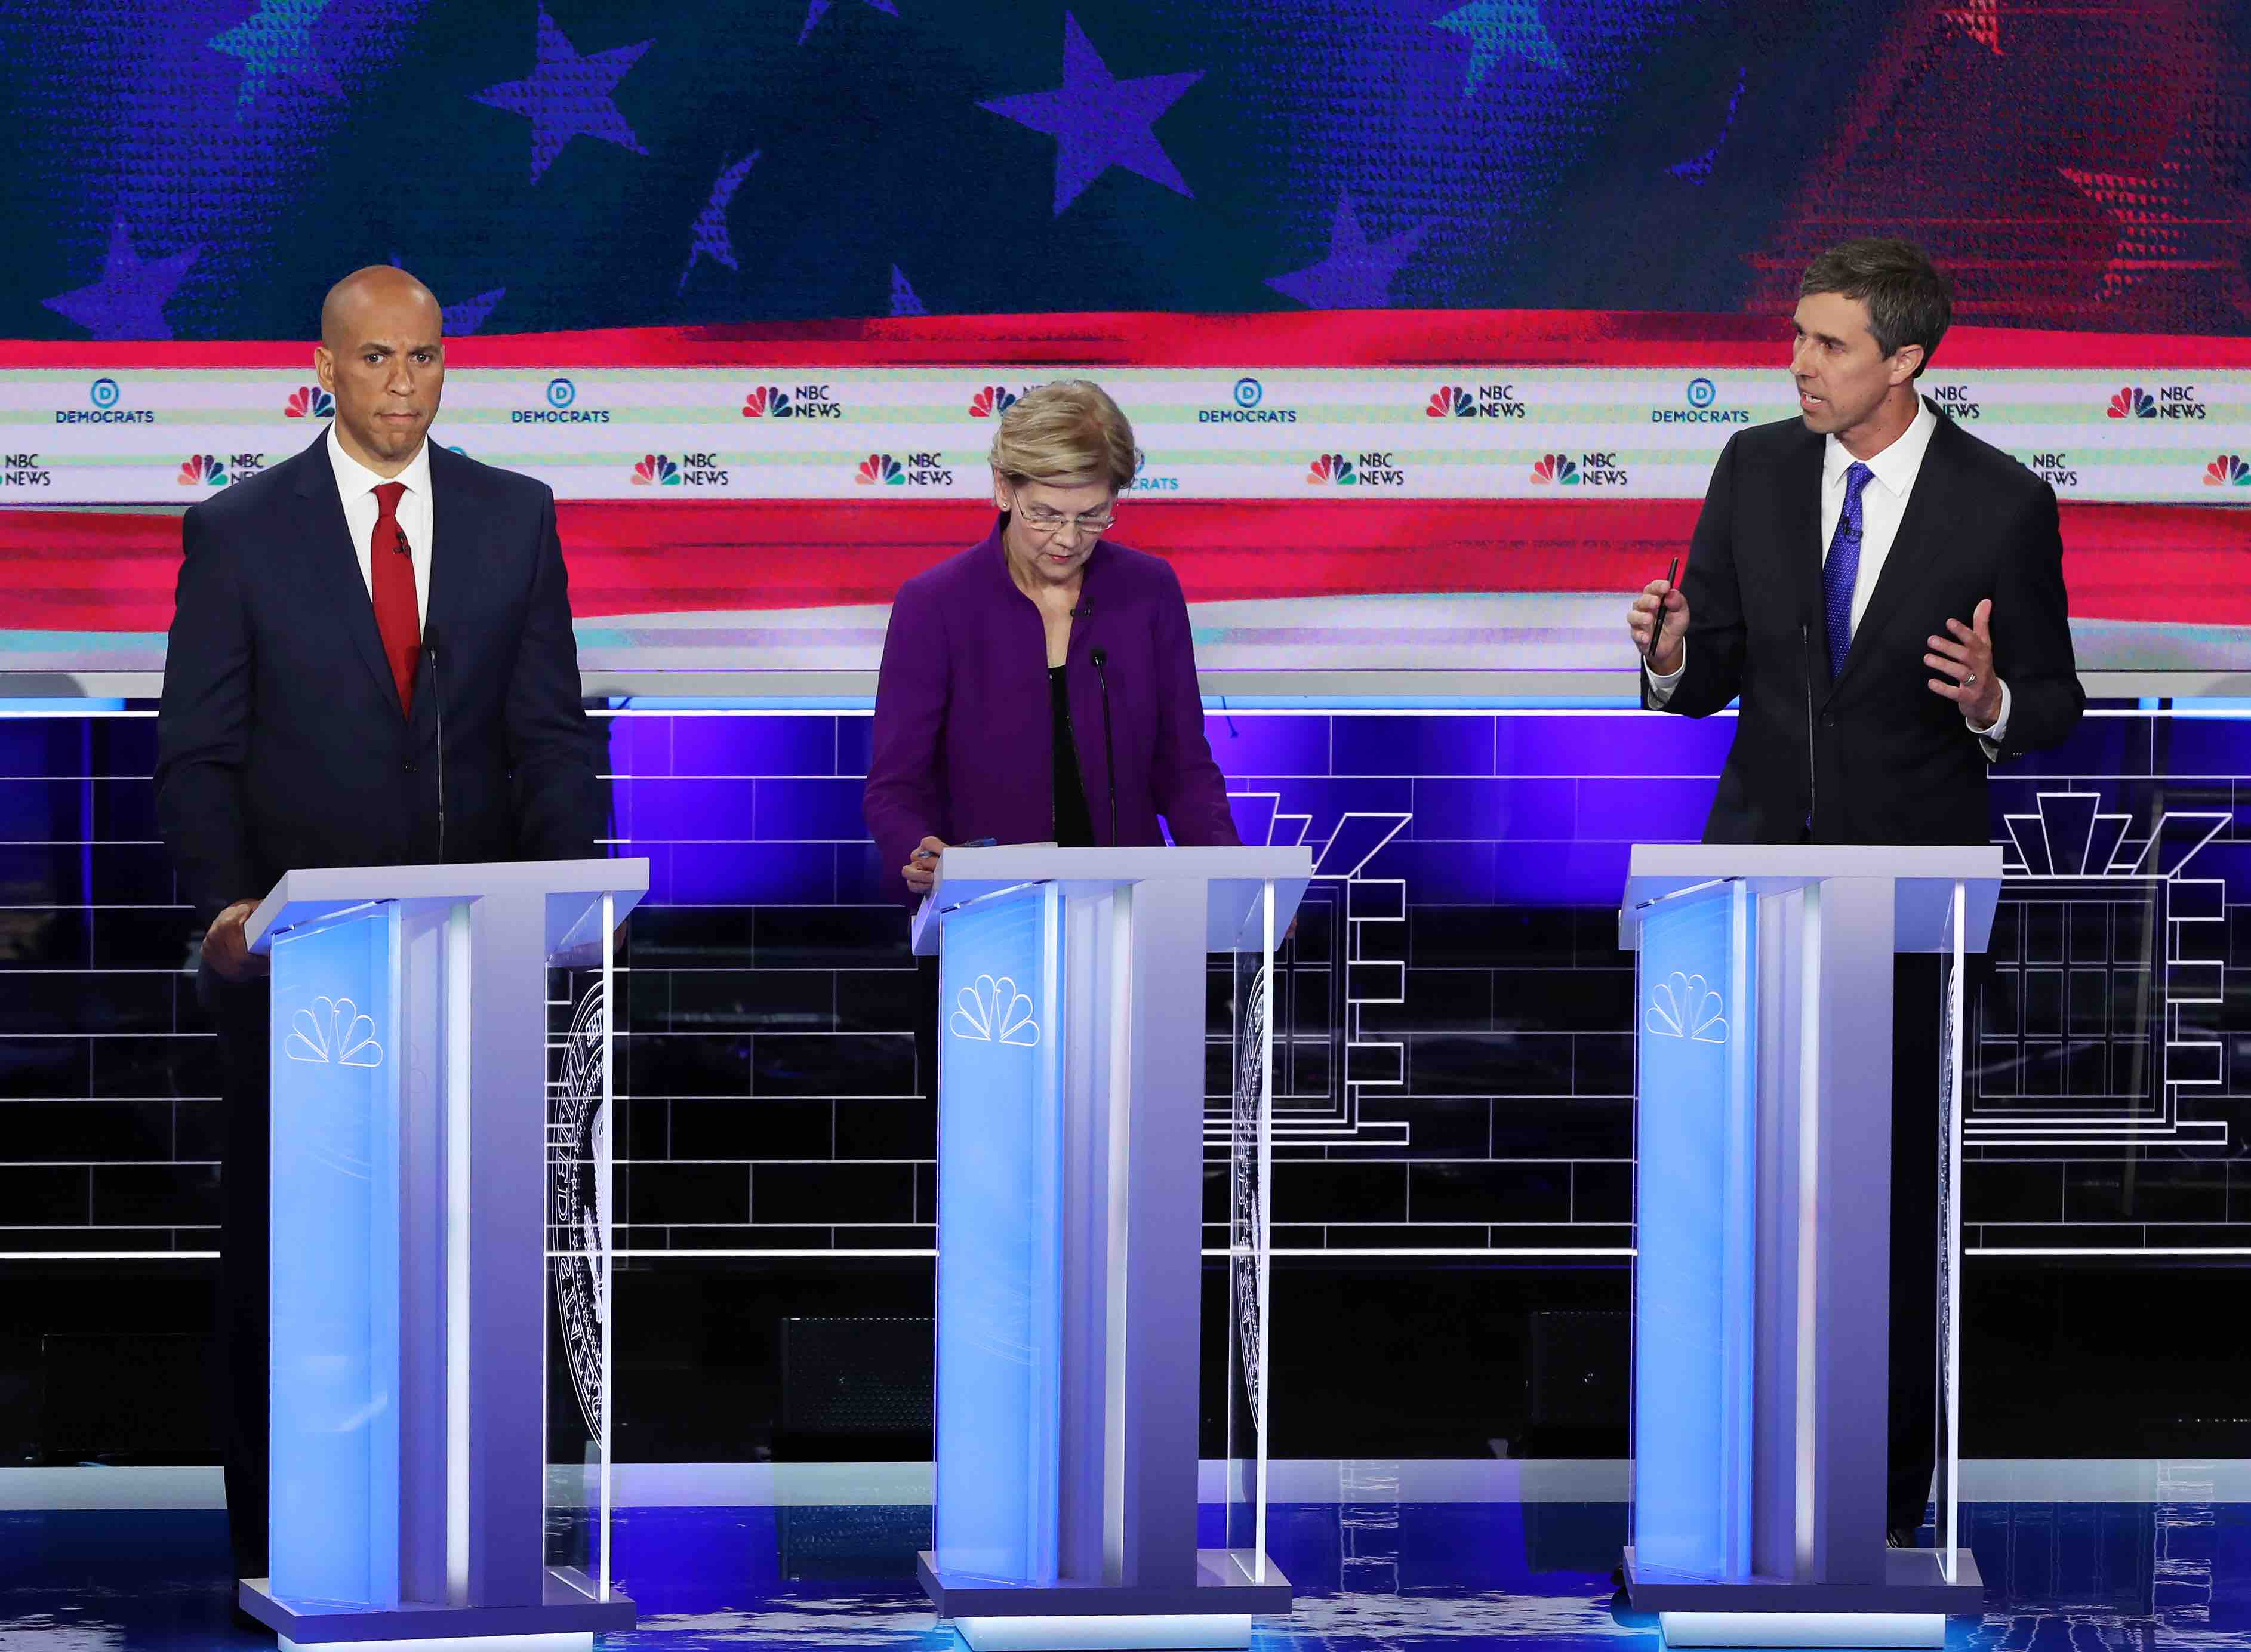 The First Democratic Debate Was Full of Awkward Uses of Spanish